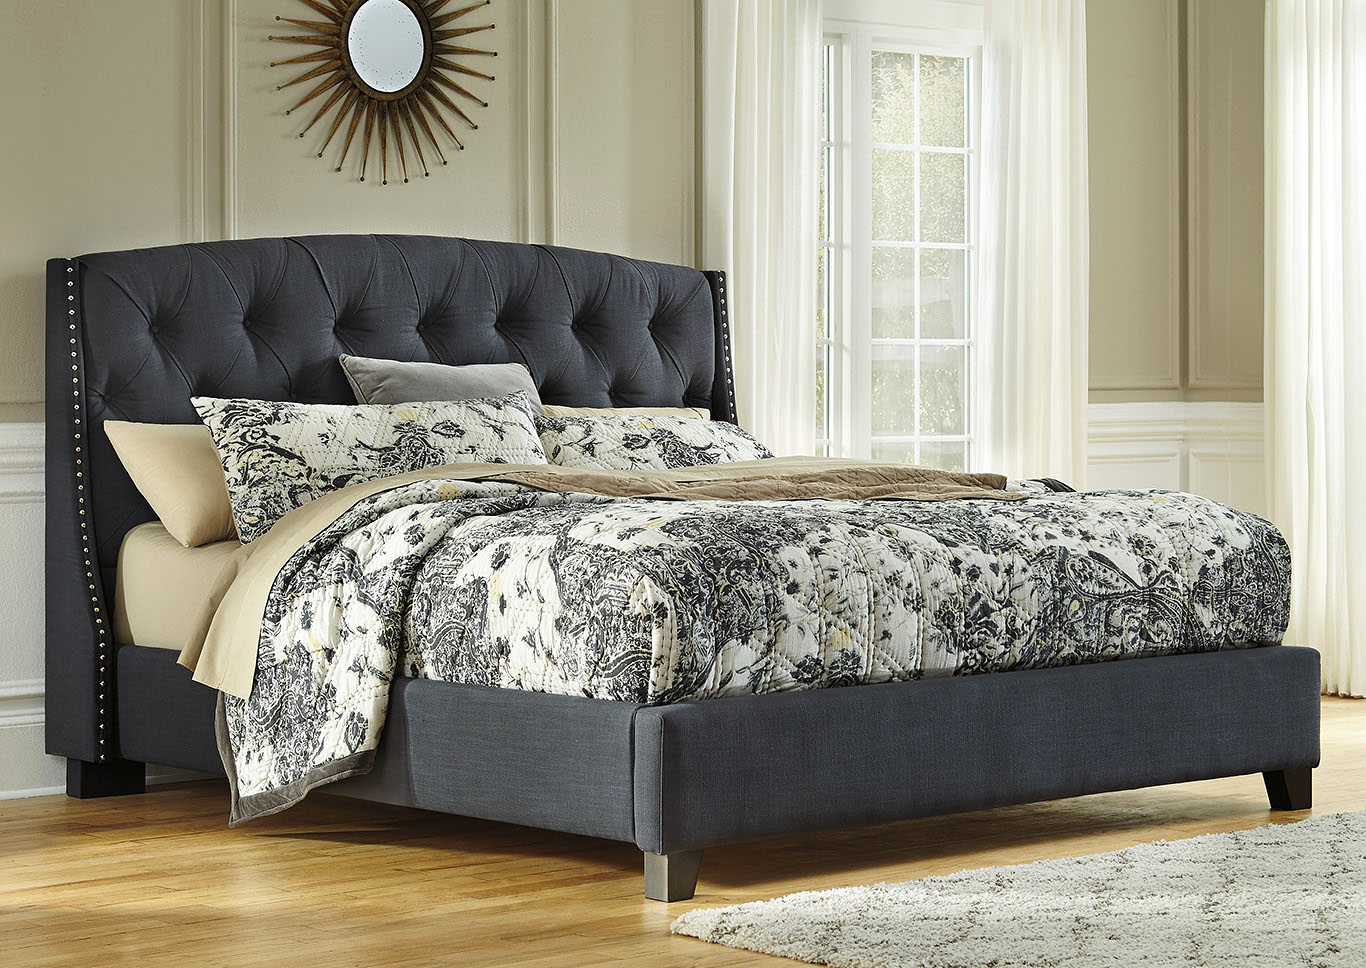 Kasidon Dark Gray California King Upholstered Bed,ABF Signature Design by Ashley